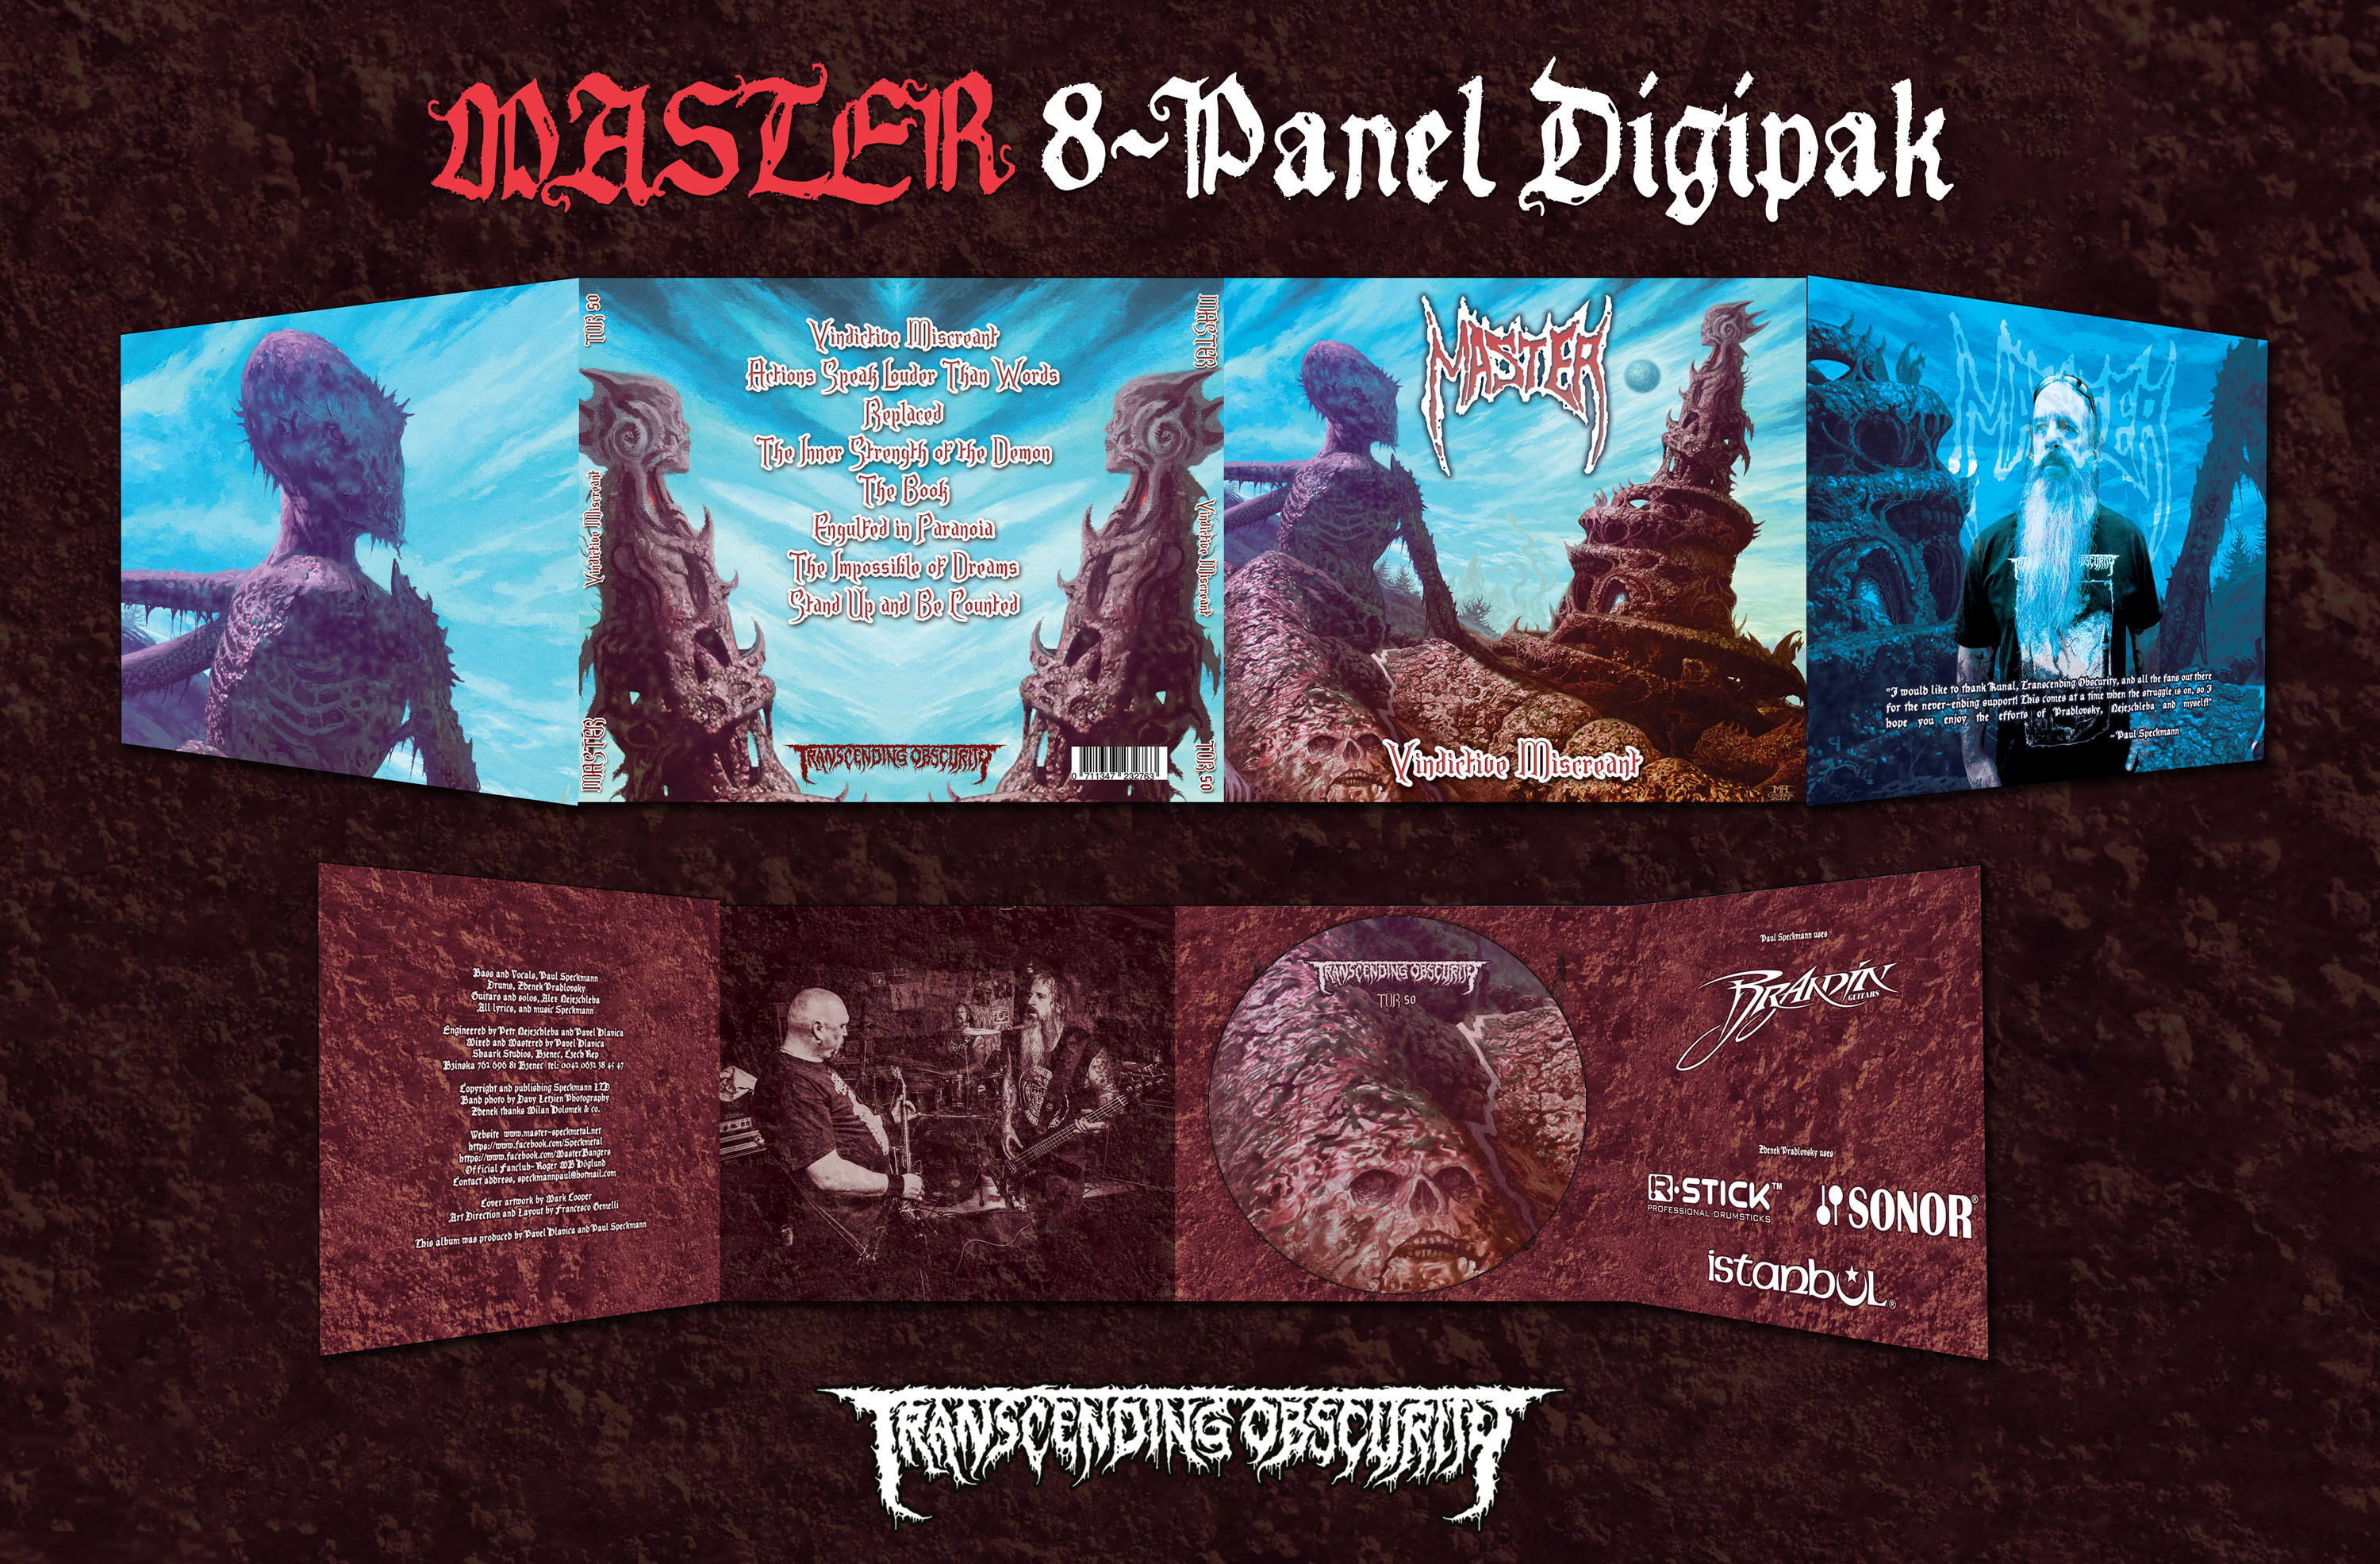 MASTER (Czech Republic) - Vindictive Miscreant 8-panel digipak CD with 12-page booklet